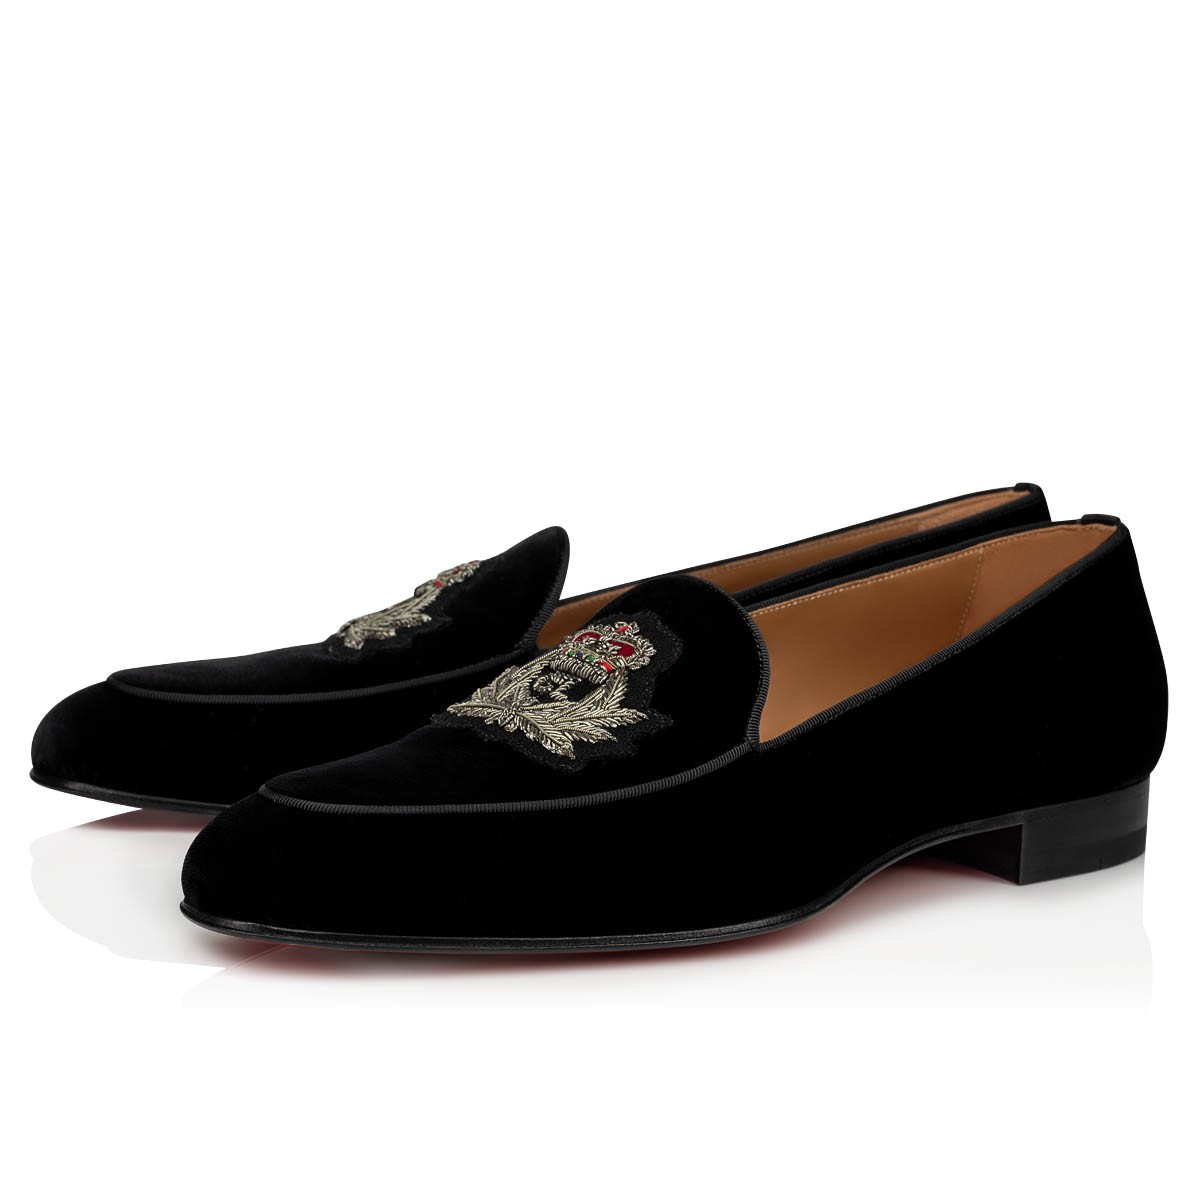 Shoes - Crest On The Nile - Christian Louboutin